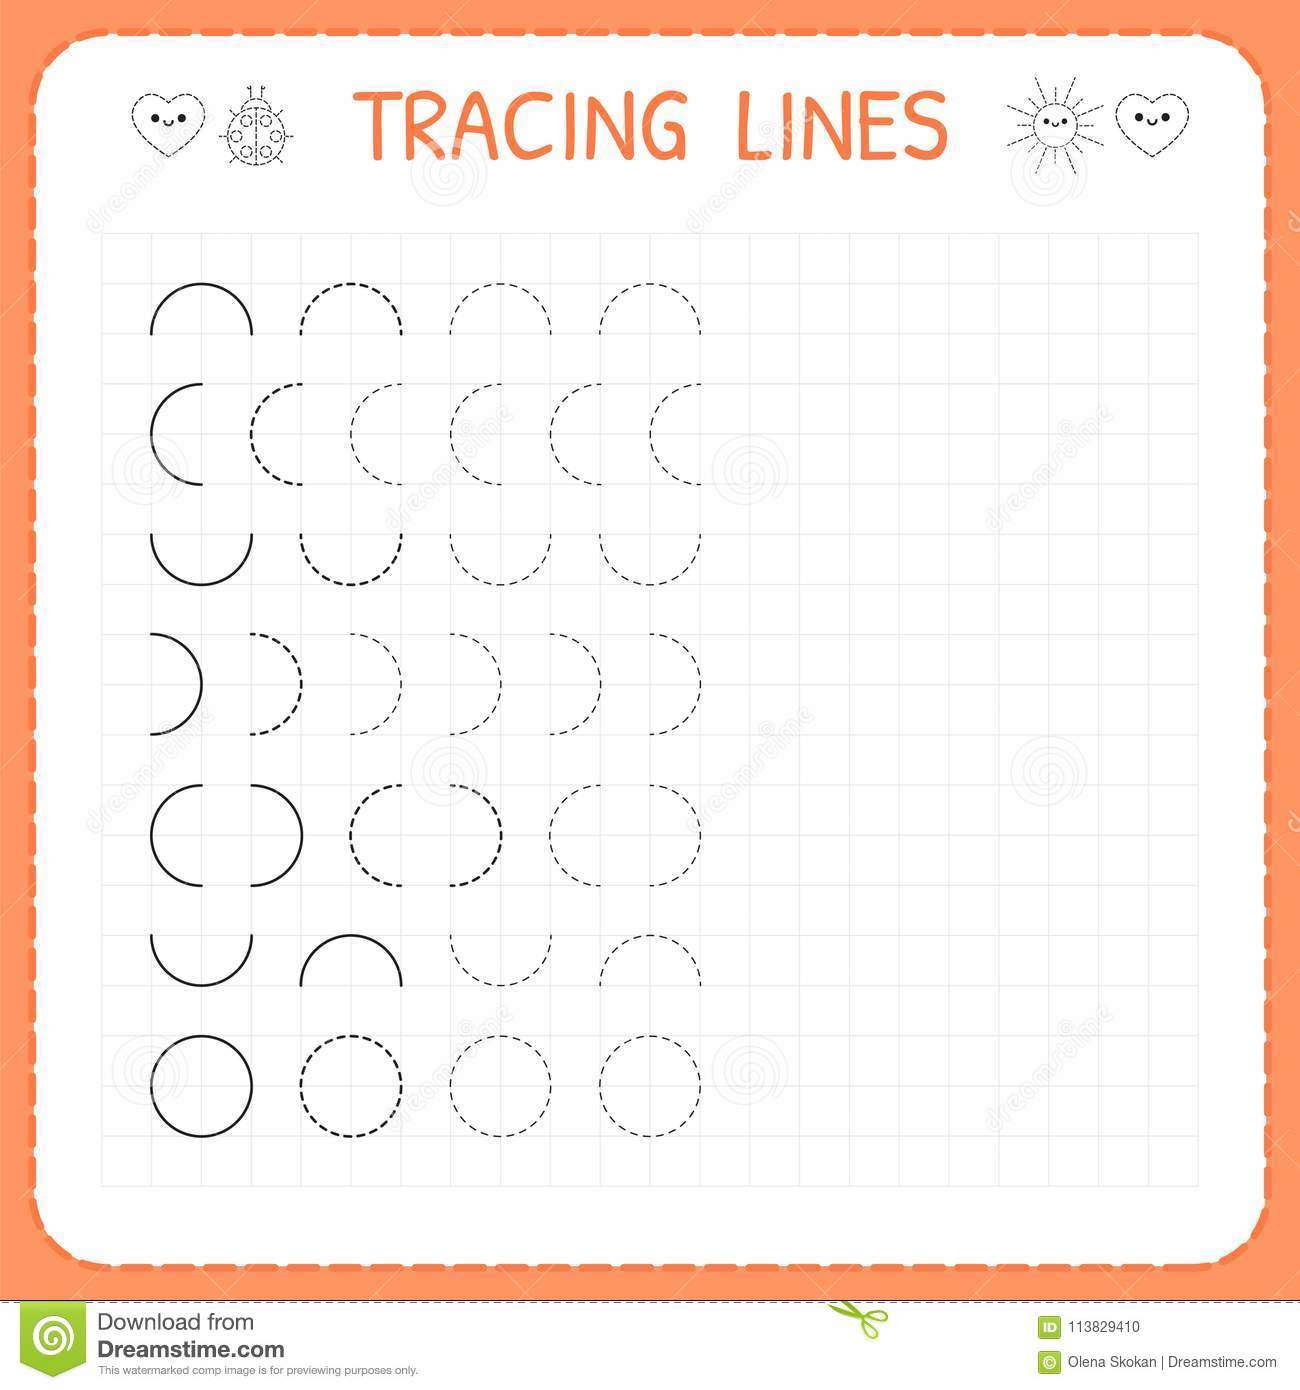 Tracing Lines Worksheet For Kids Basic Writing Working